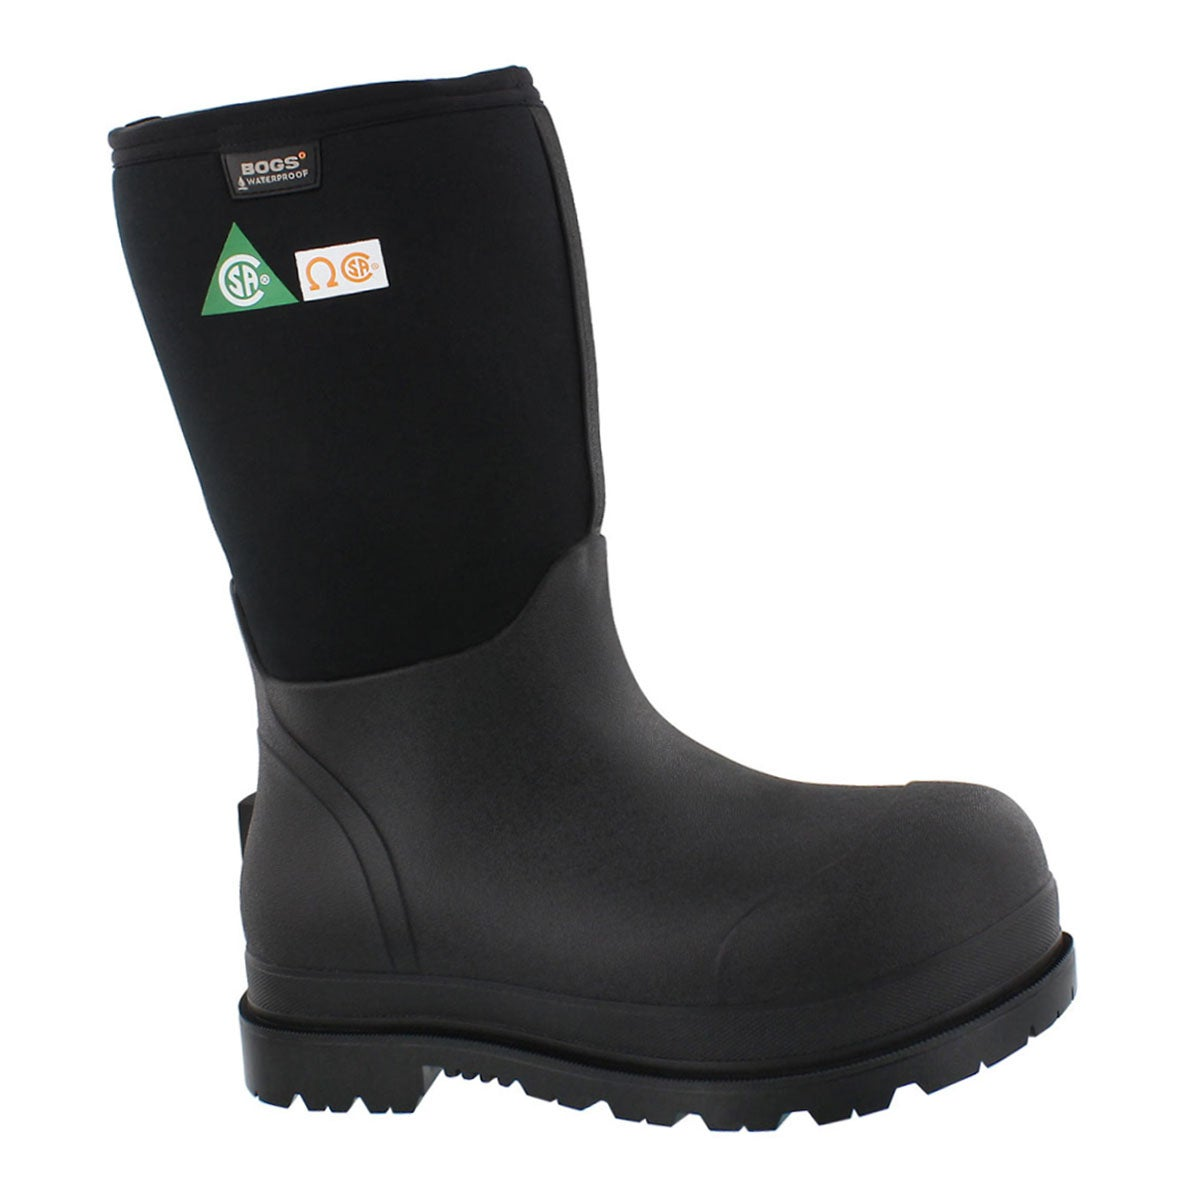 Men's STOCKMAN CT CSA waterproof black boots